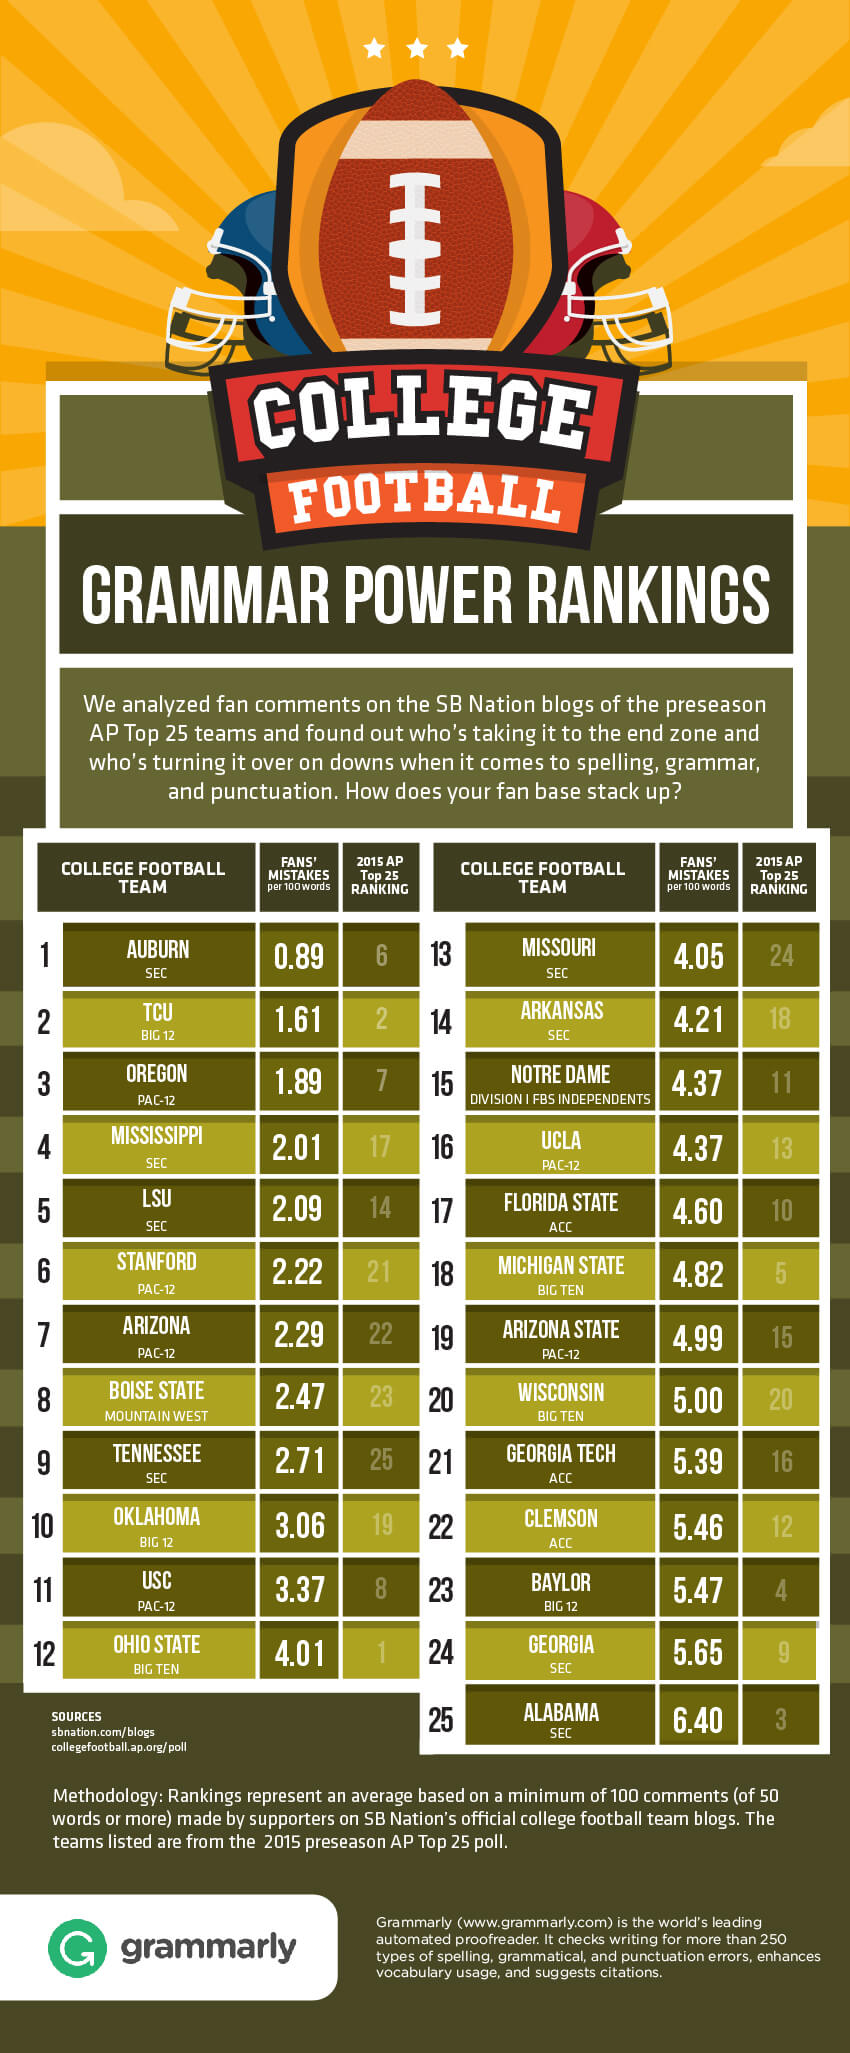 College Football Ranking by Grammarly's Plagiarism Checker